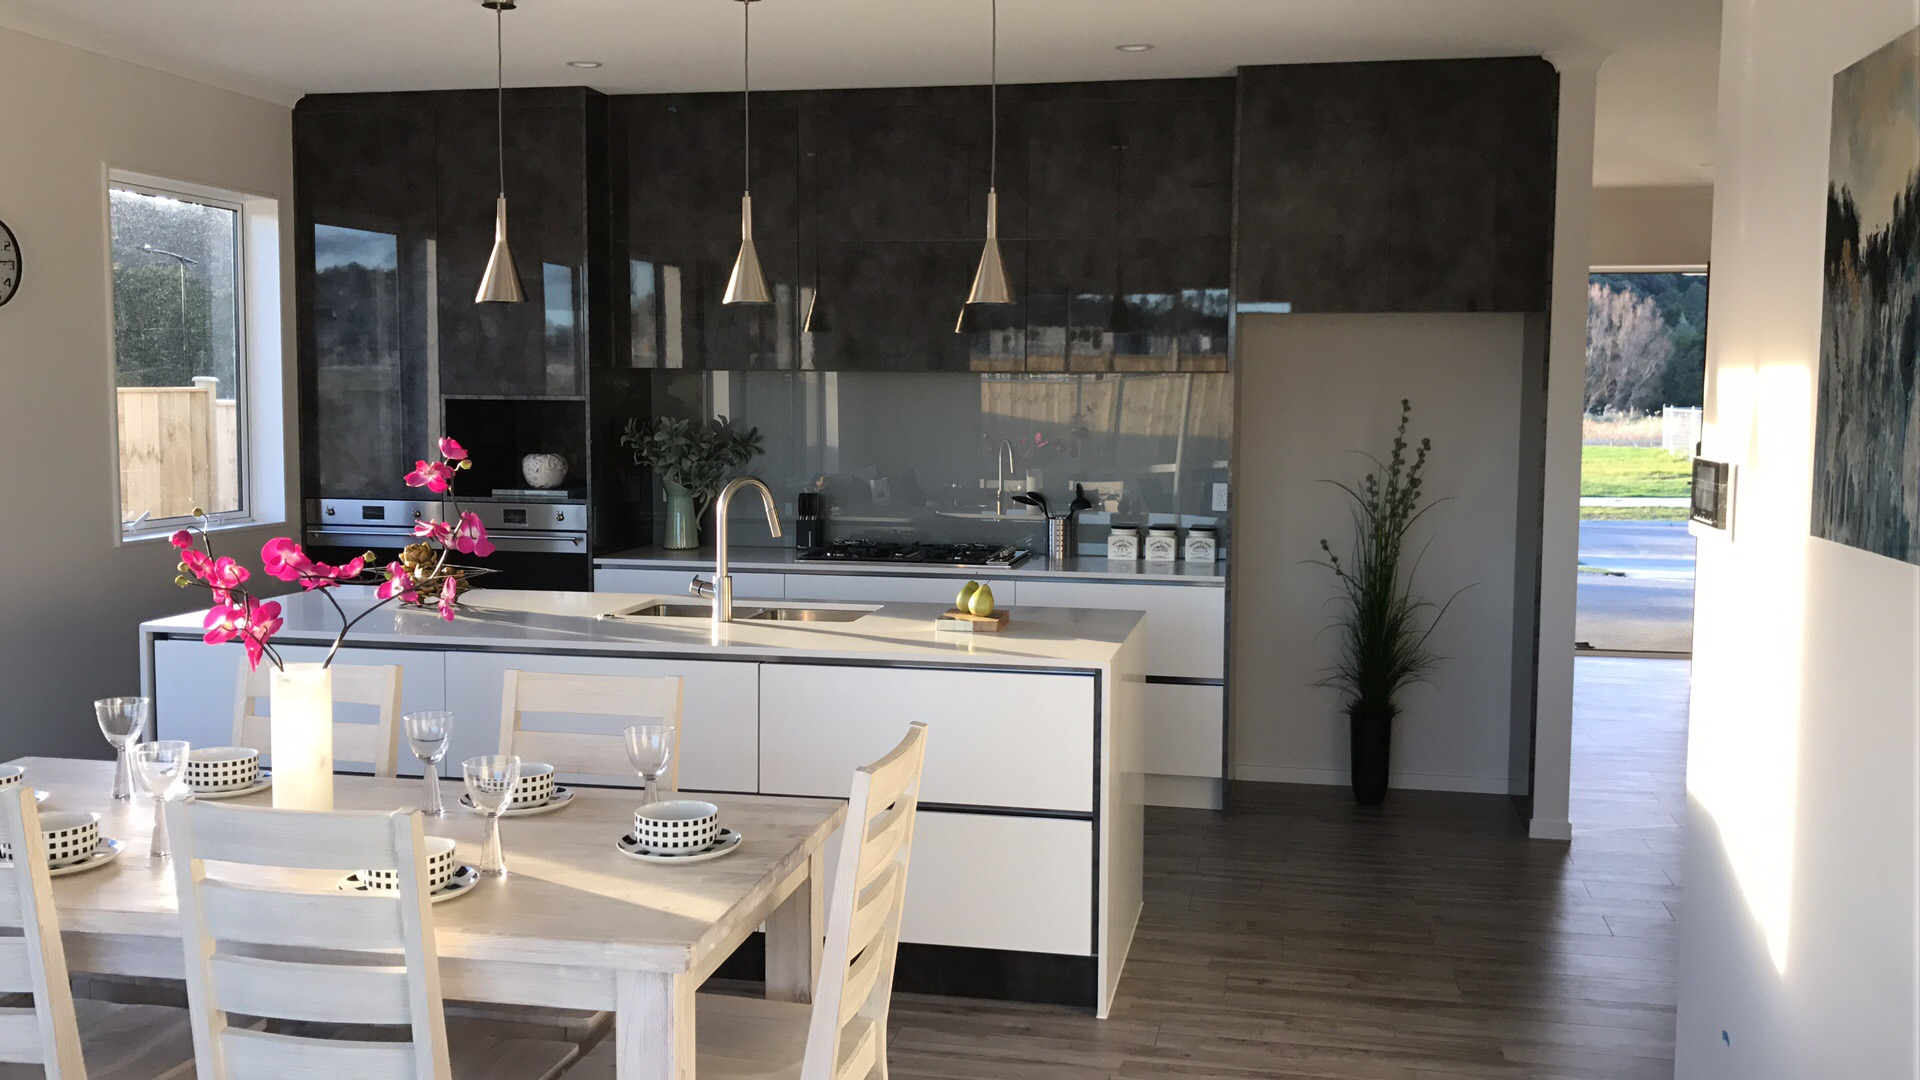 sample of kitchen design. sample kitchen design videosample